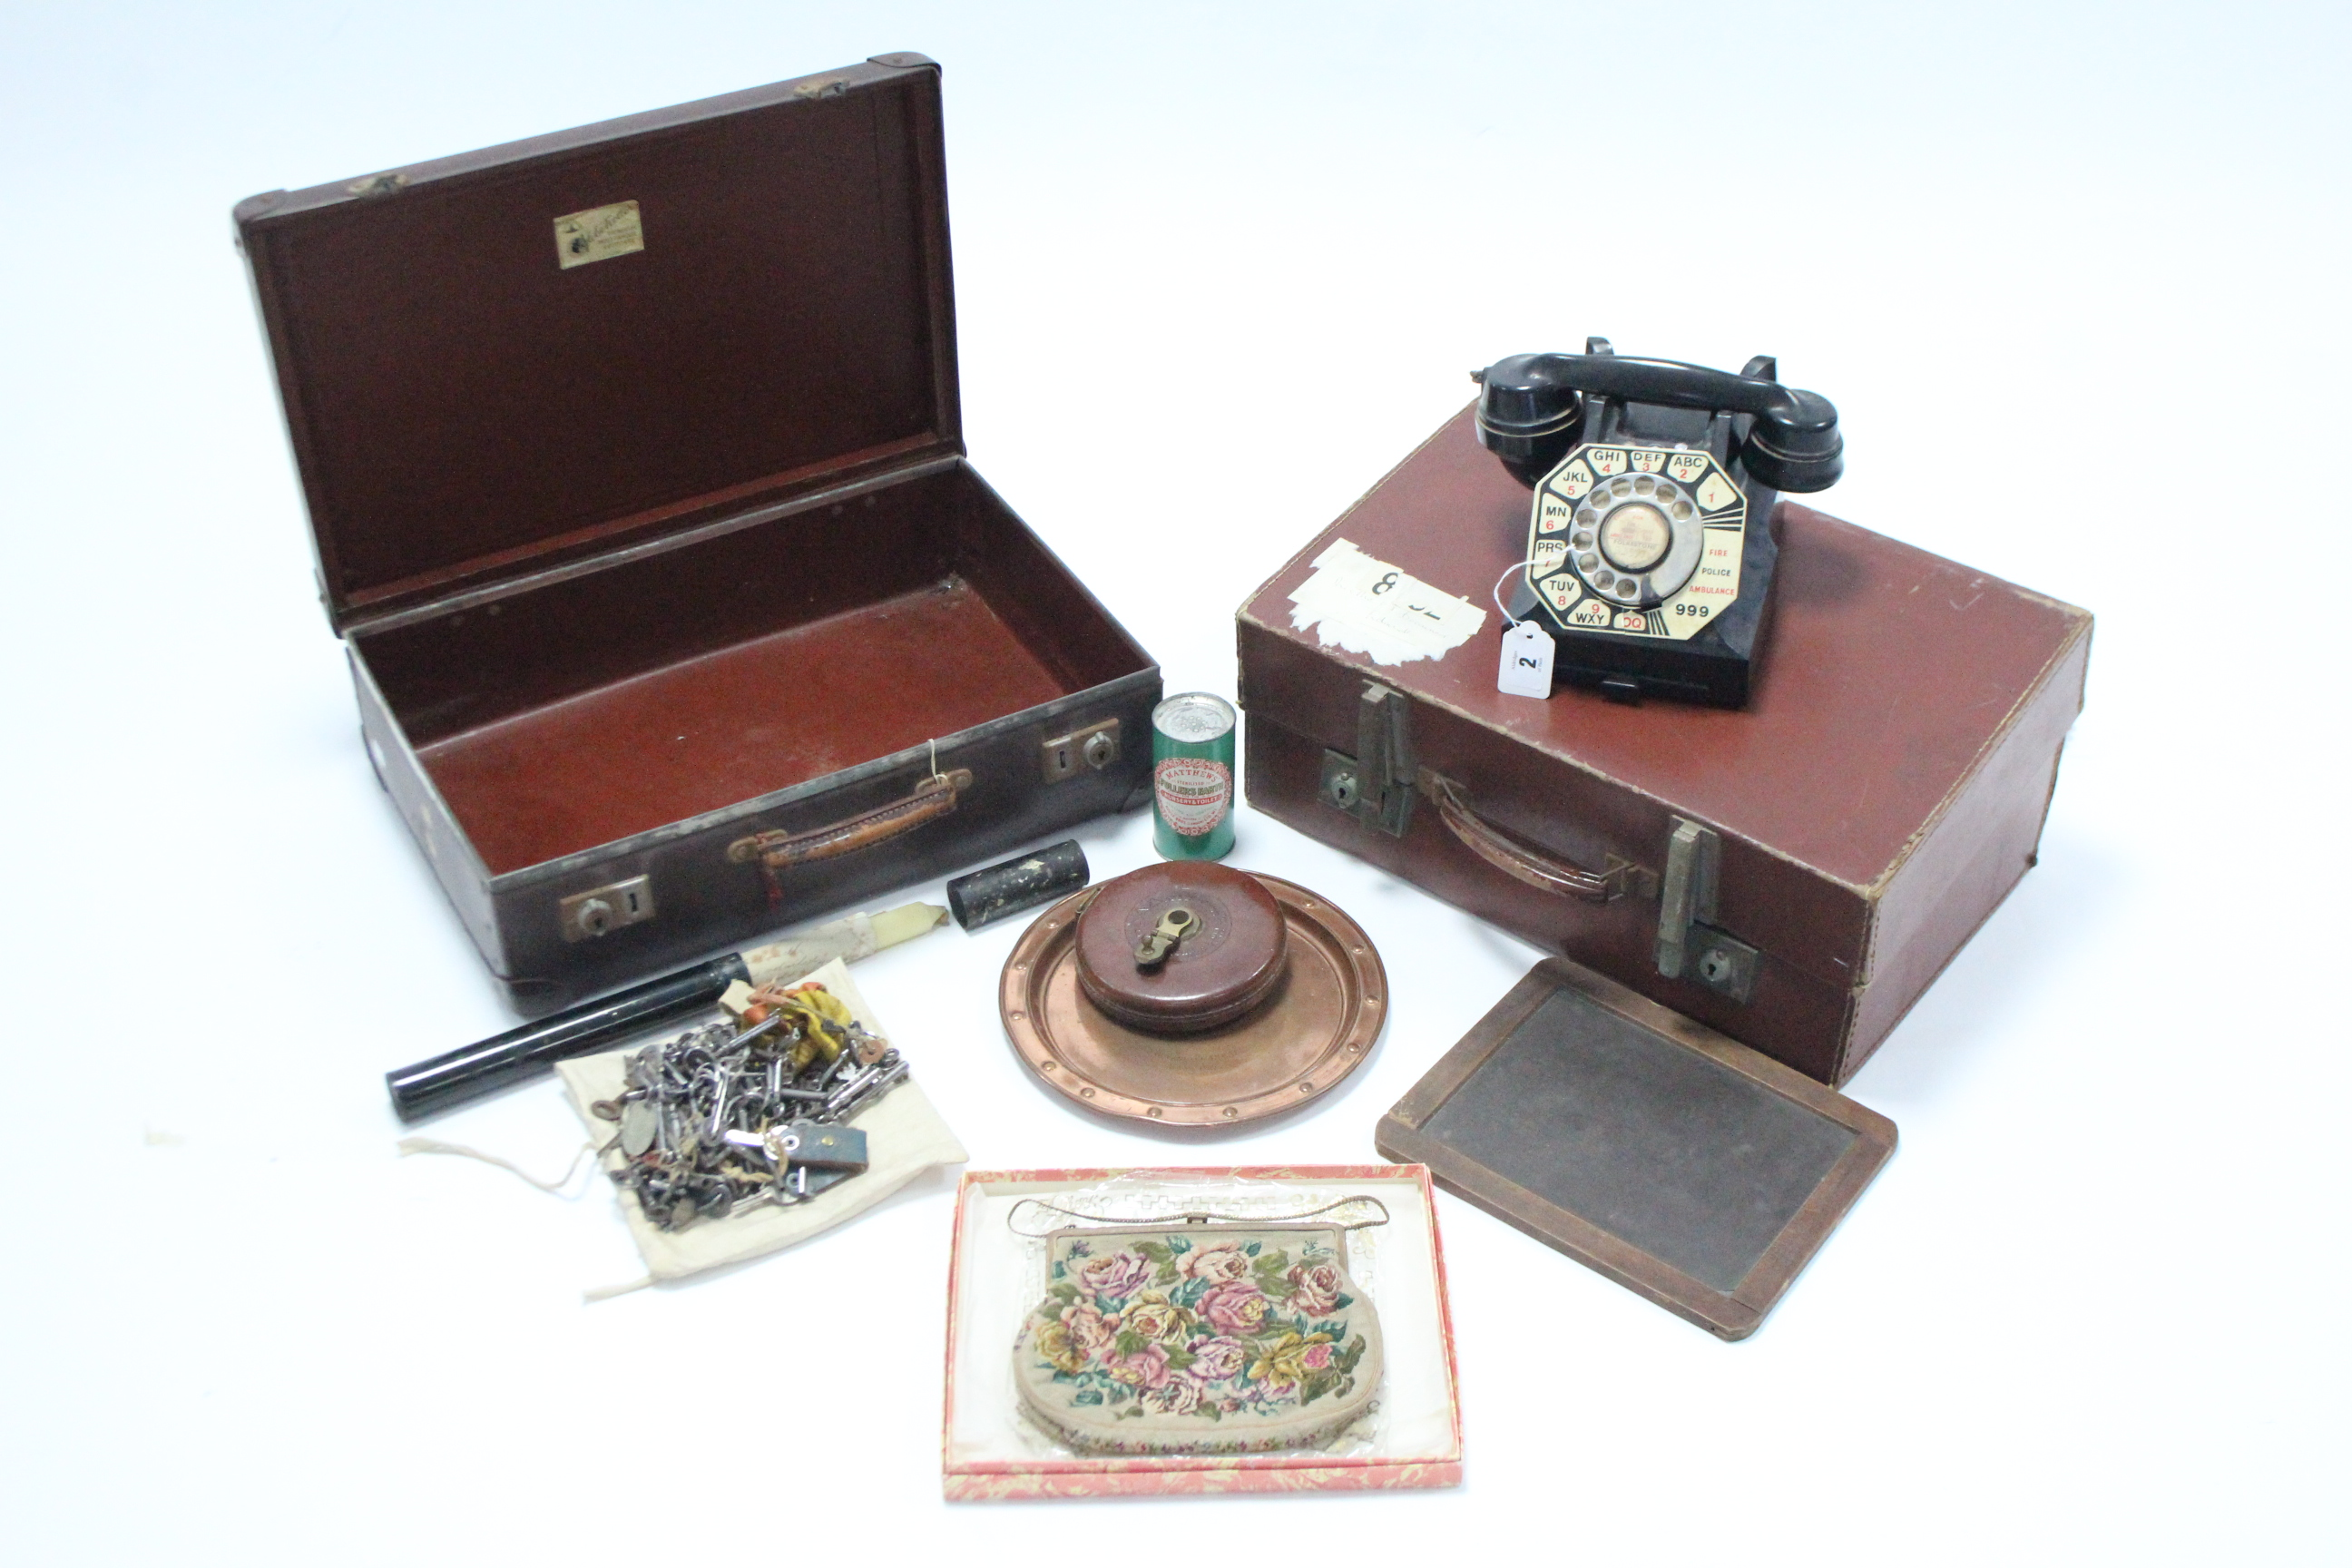 A vintage G. P. O. black Bakelite telephone; two fibre-covered suitcases; a Grown Brand child's